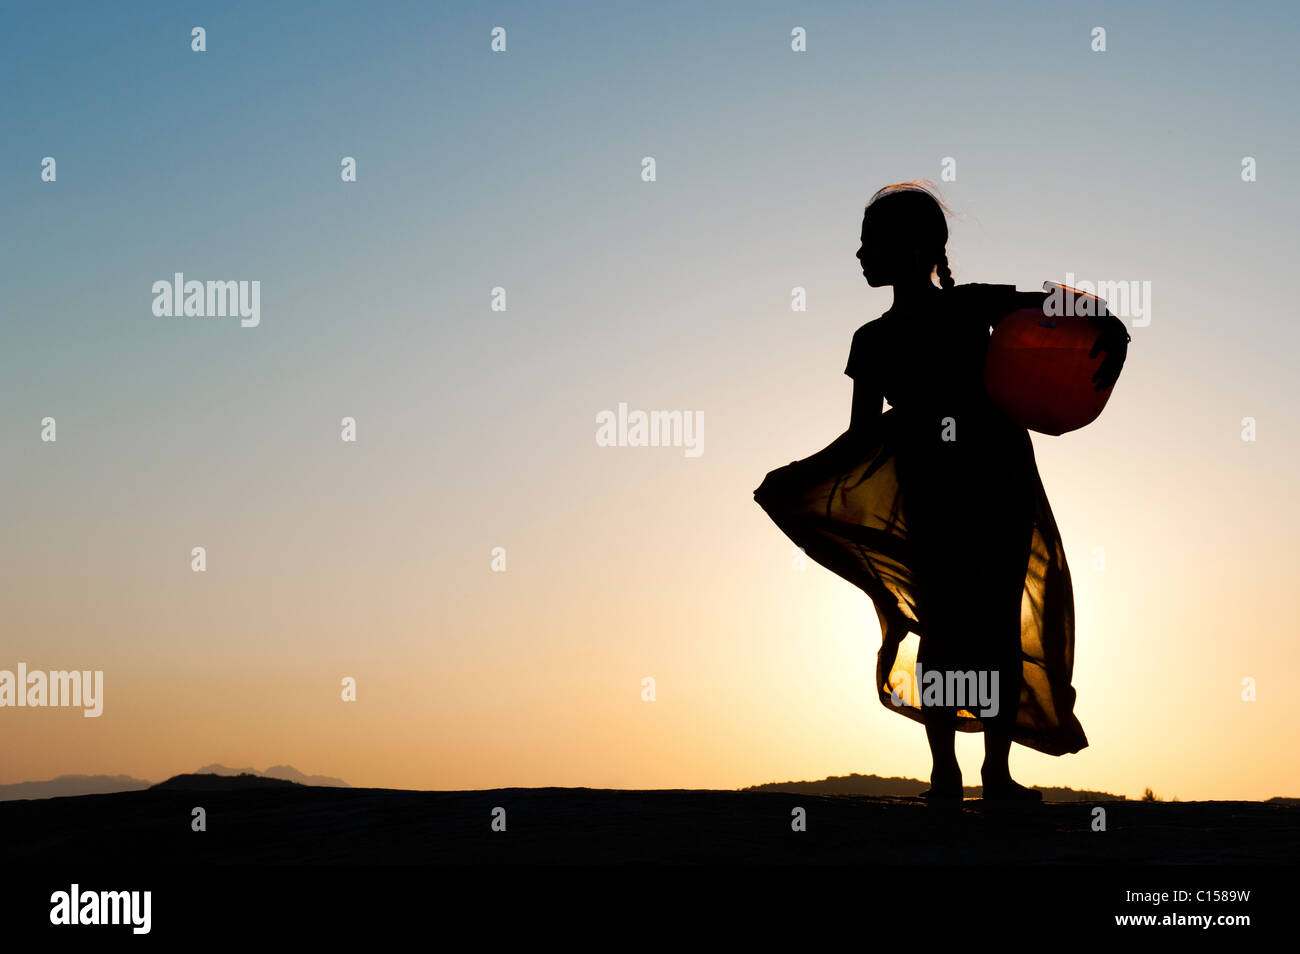 Rural Indian village girl carrying a water pot at sunset. Silhouette. Andhra Pradesh, India - Stock Image